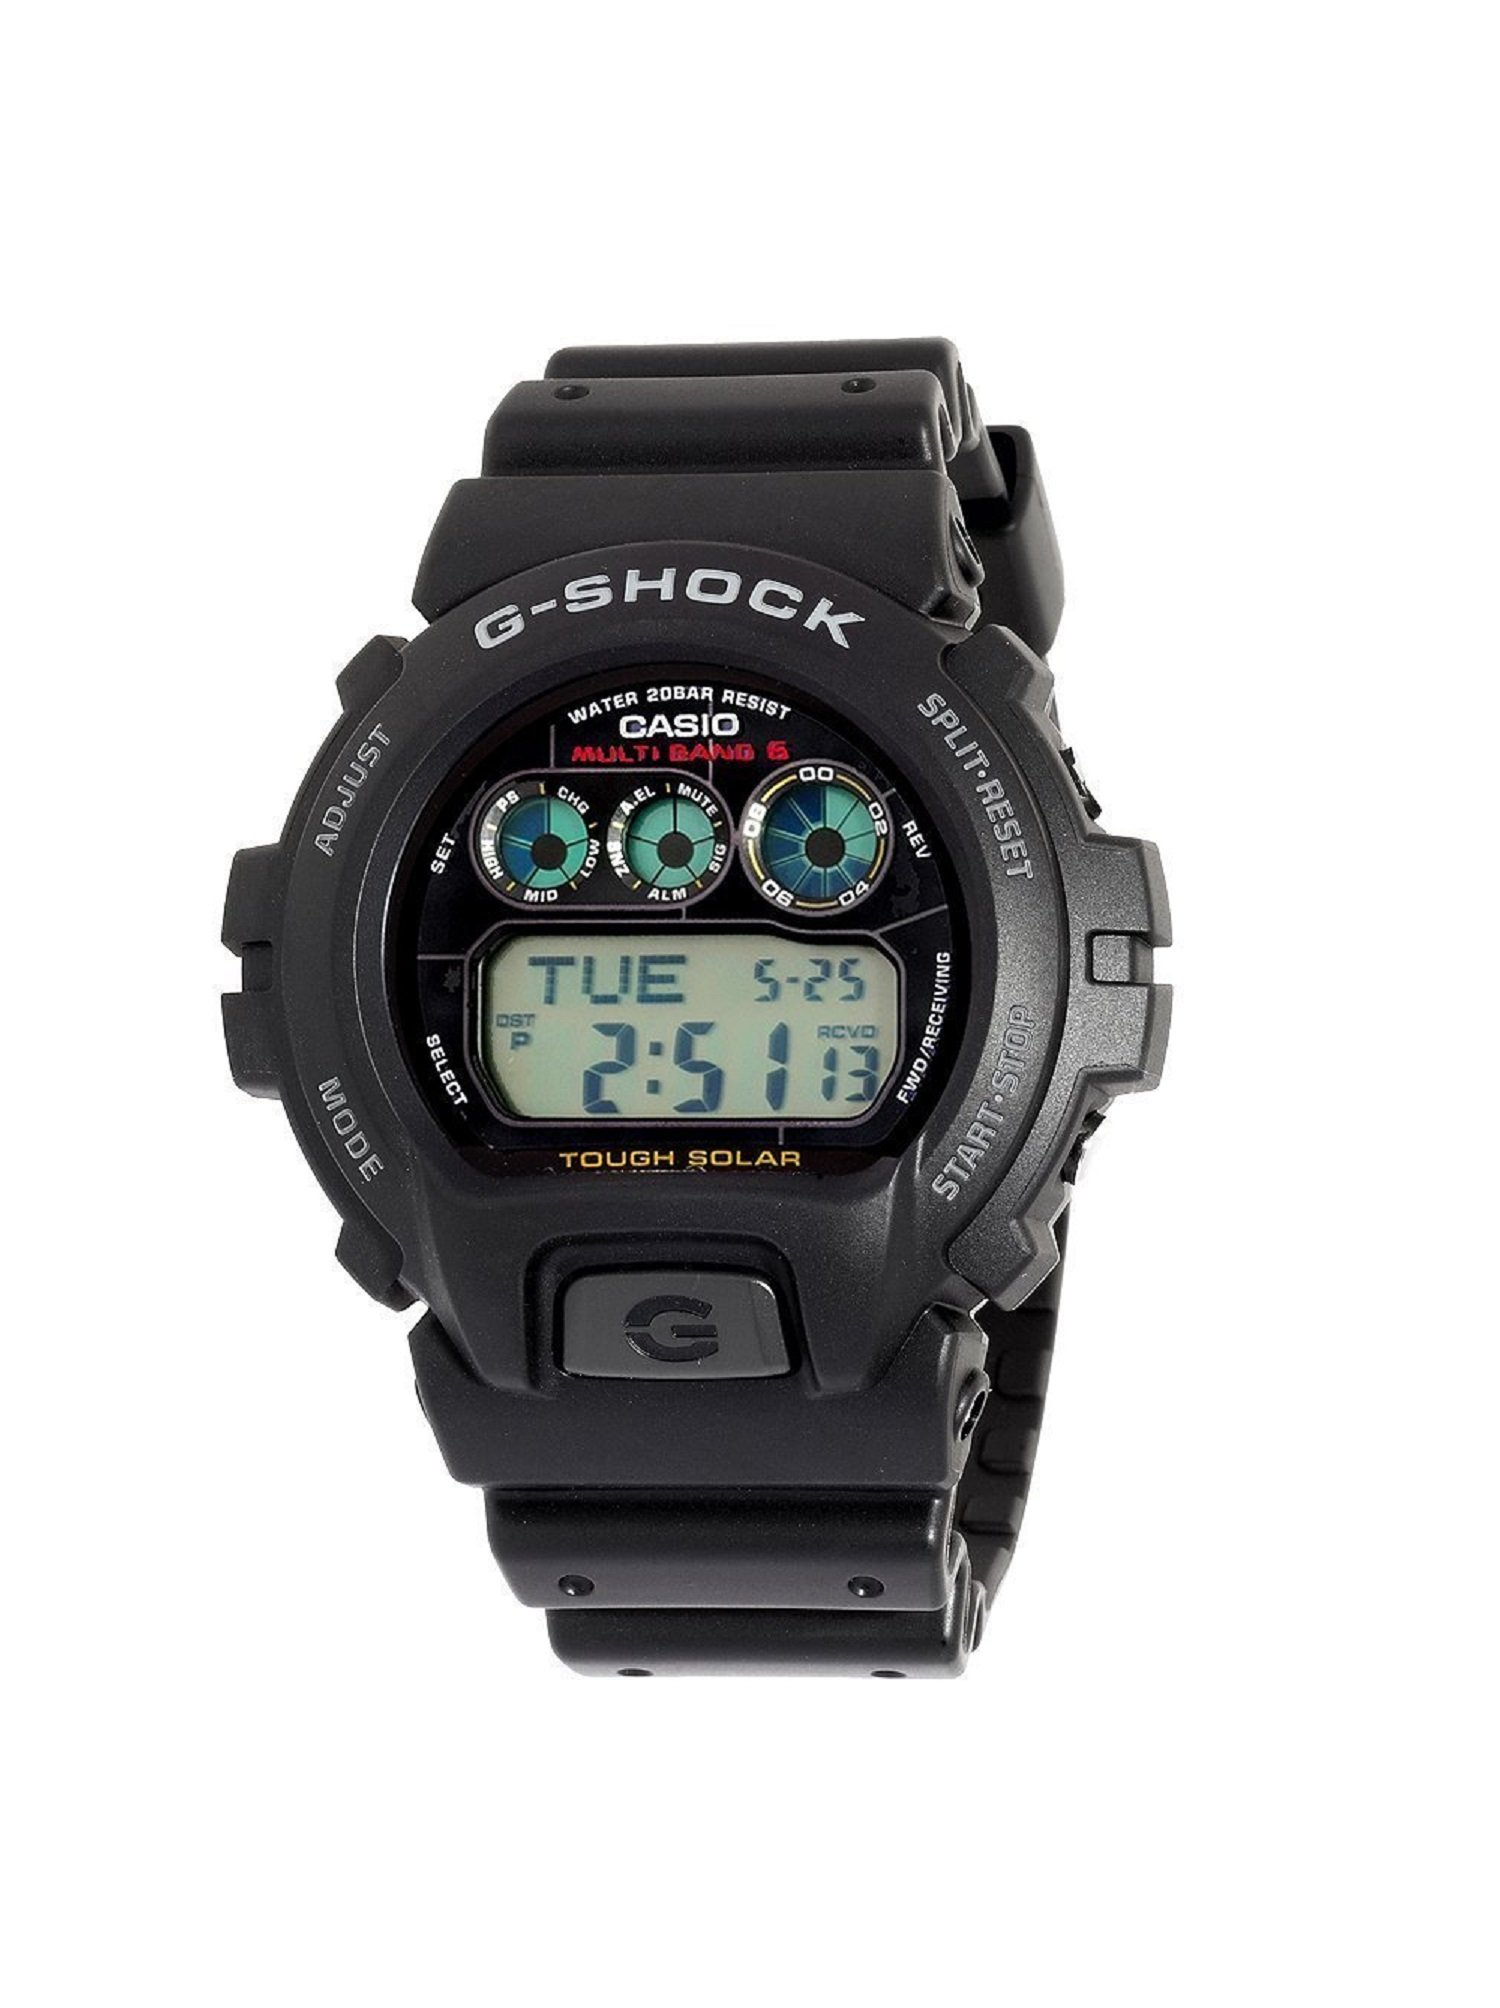 Casio - G Shock Solar Atomic Watch ''Product Category: Miscellaneous/Miscel by Casio